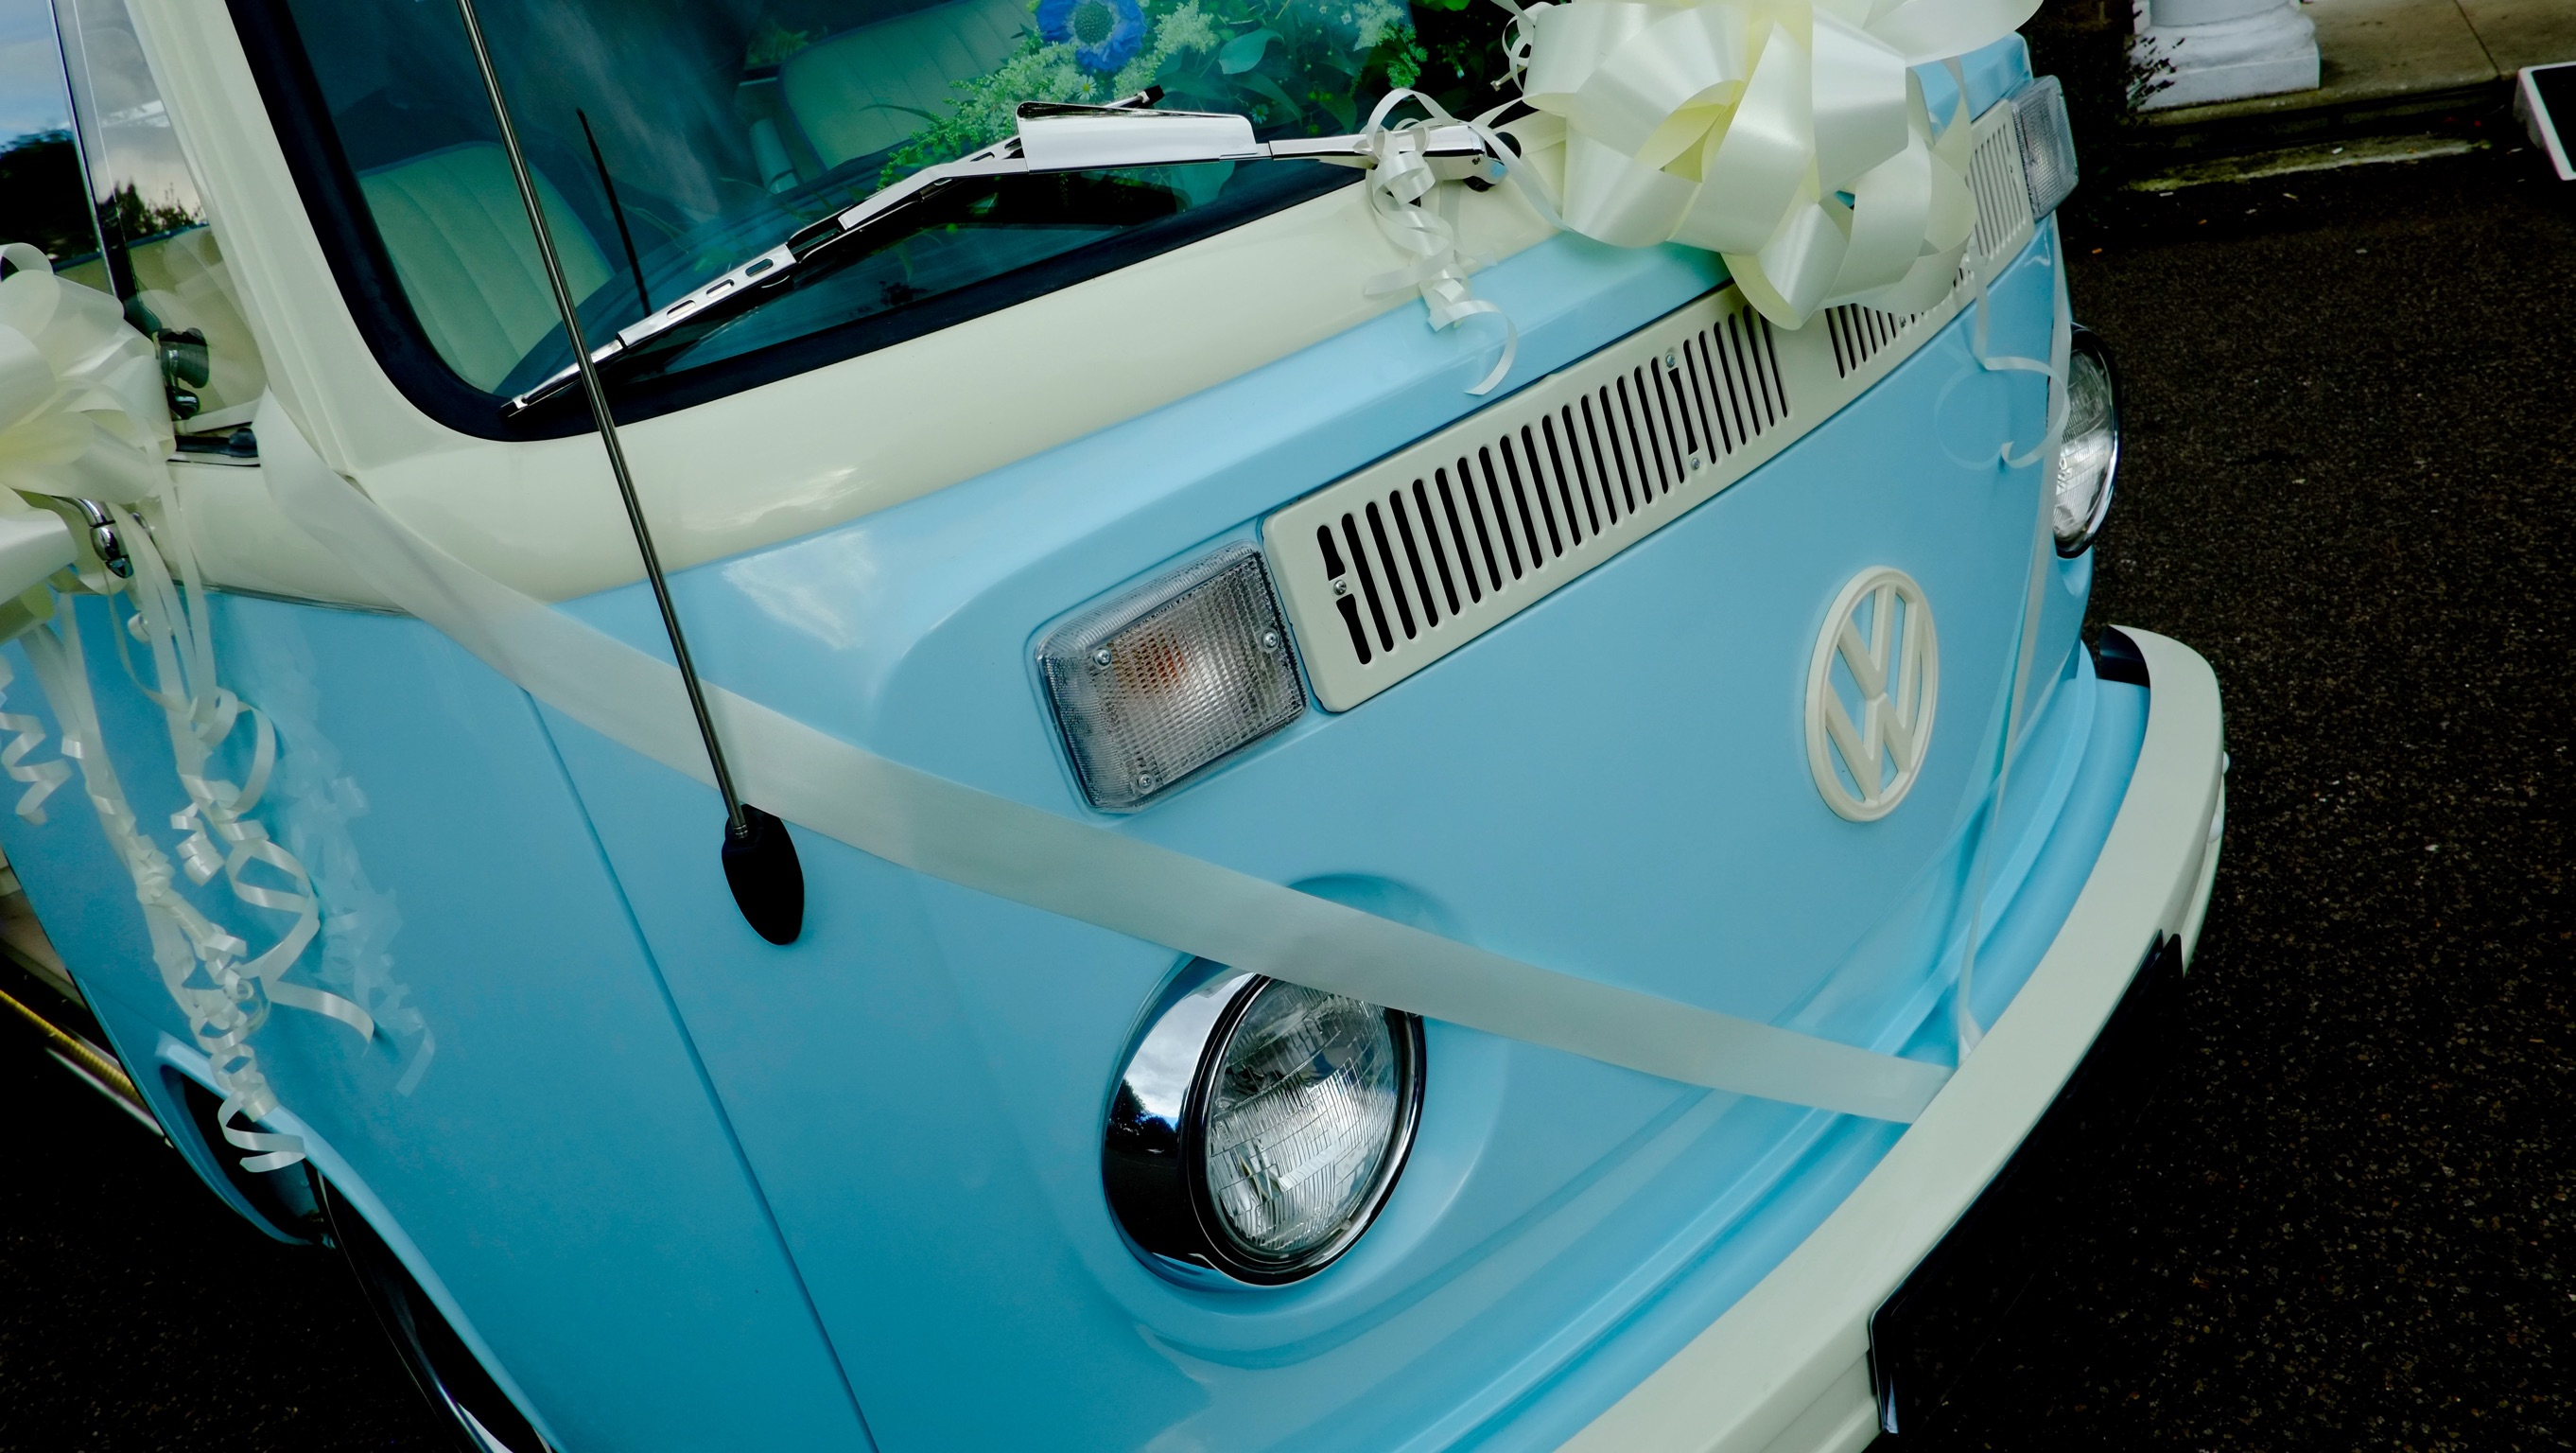 VW campervan with ribbons